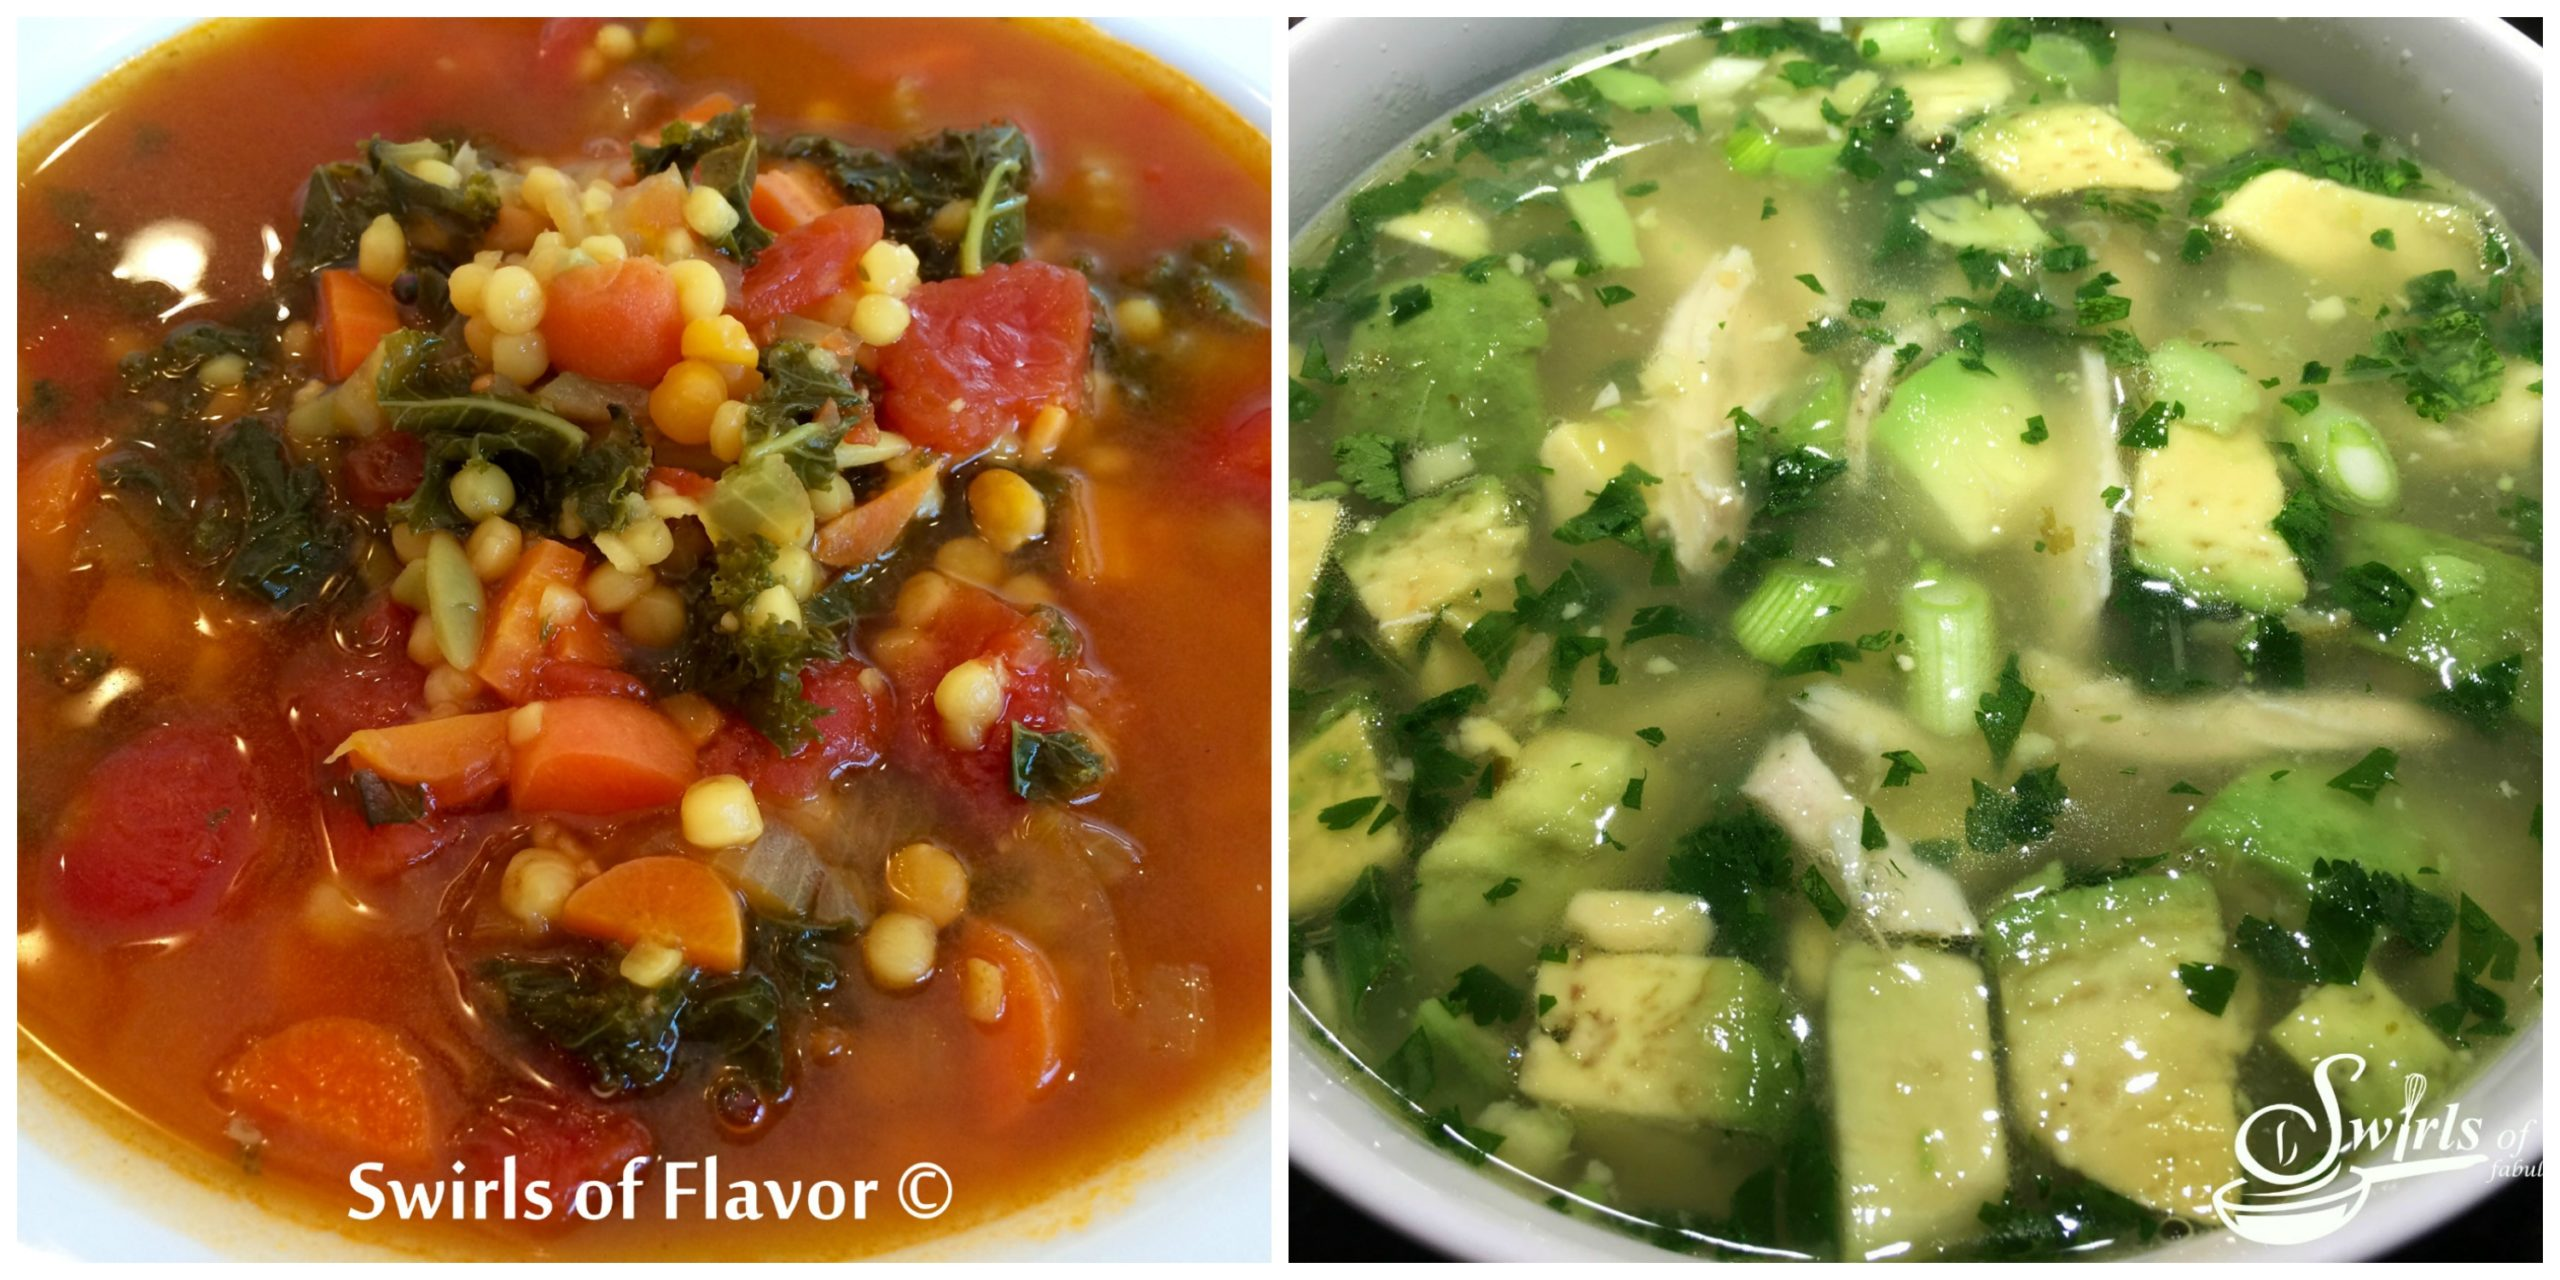 Quinoa Lentil Broth Bowl and Avocado Lime Chicken Soup